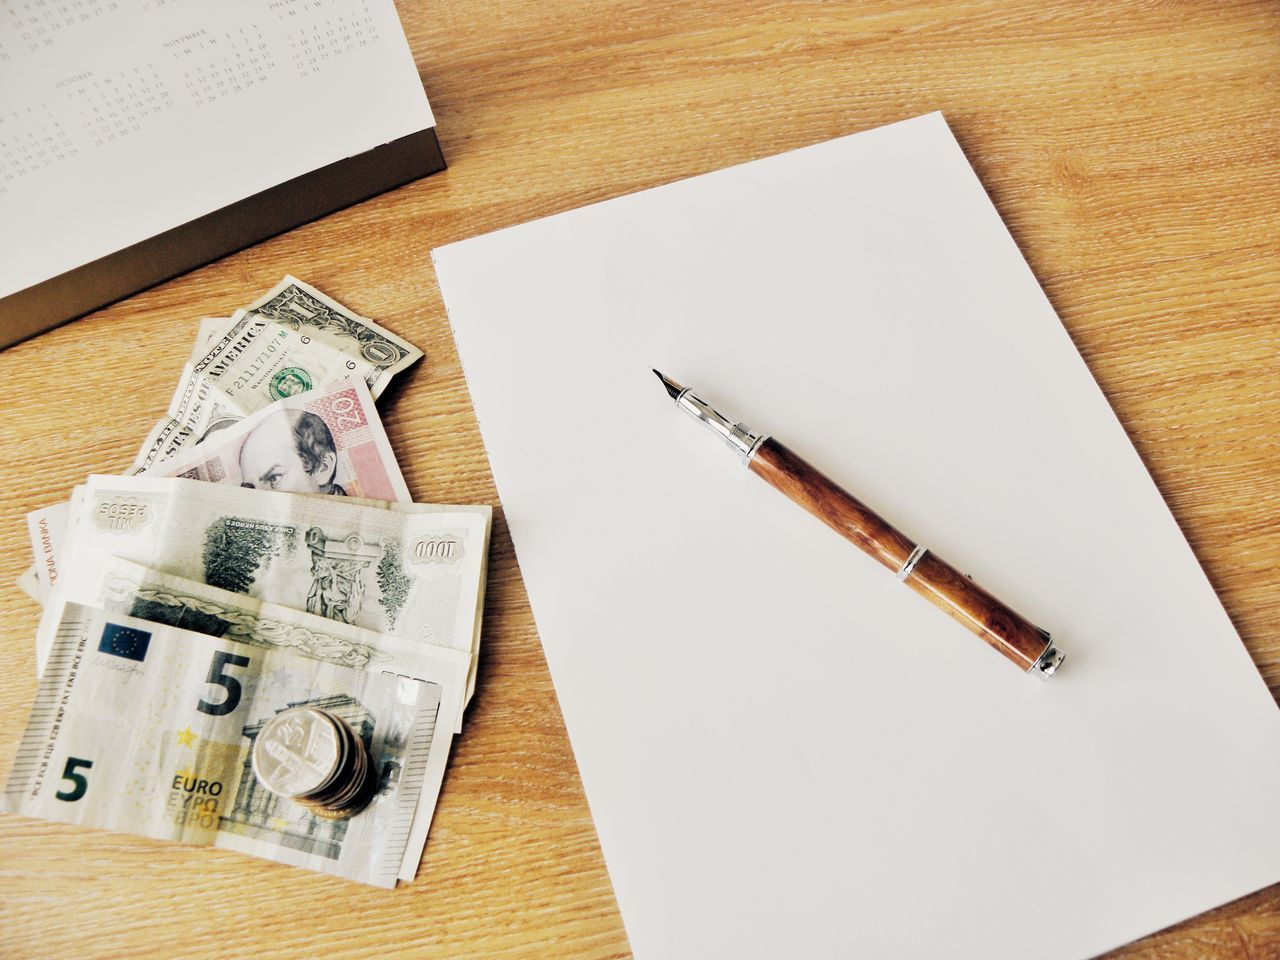 High Angle View Of Pen On Table With Currency